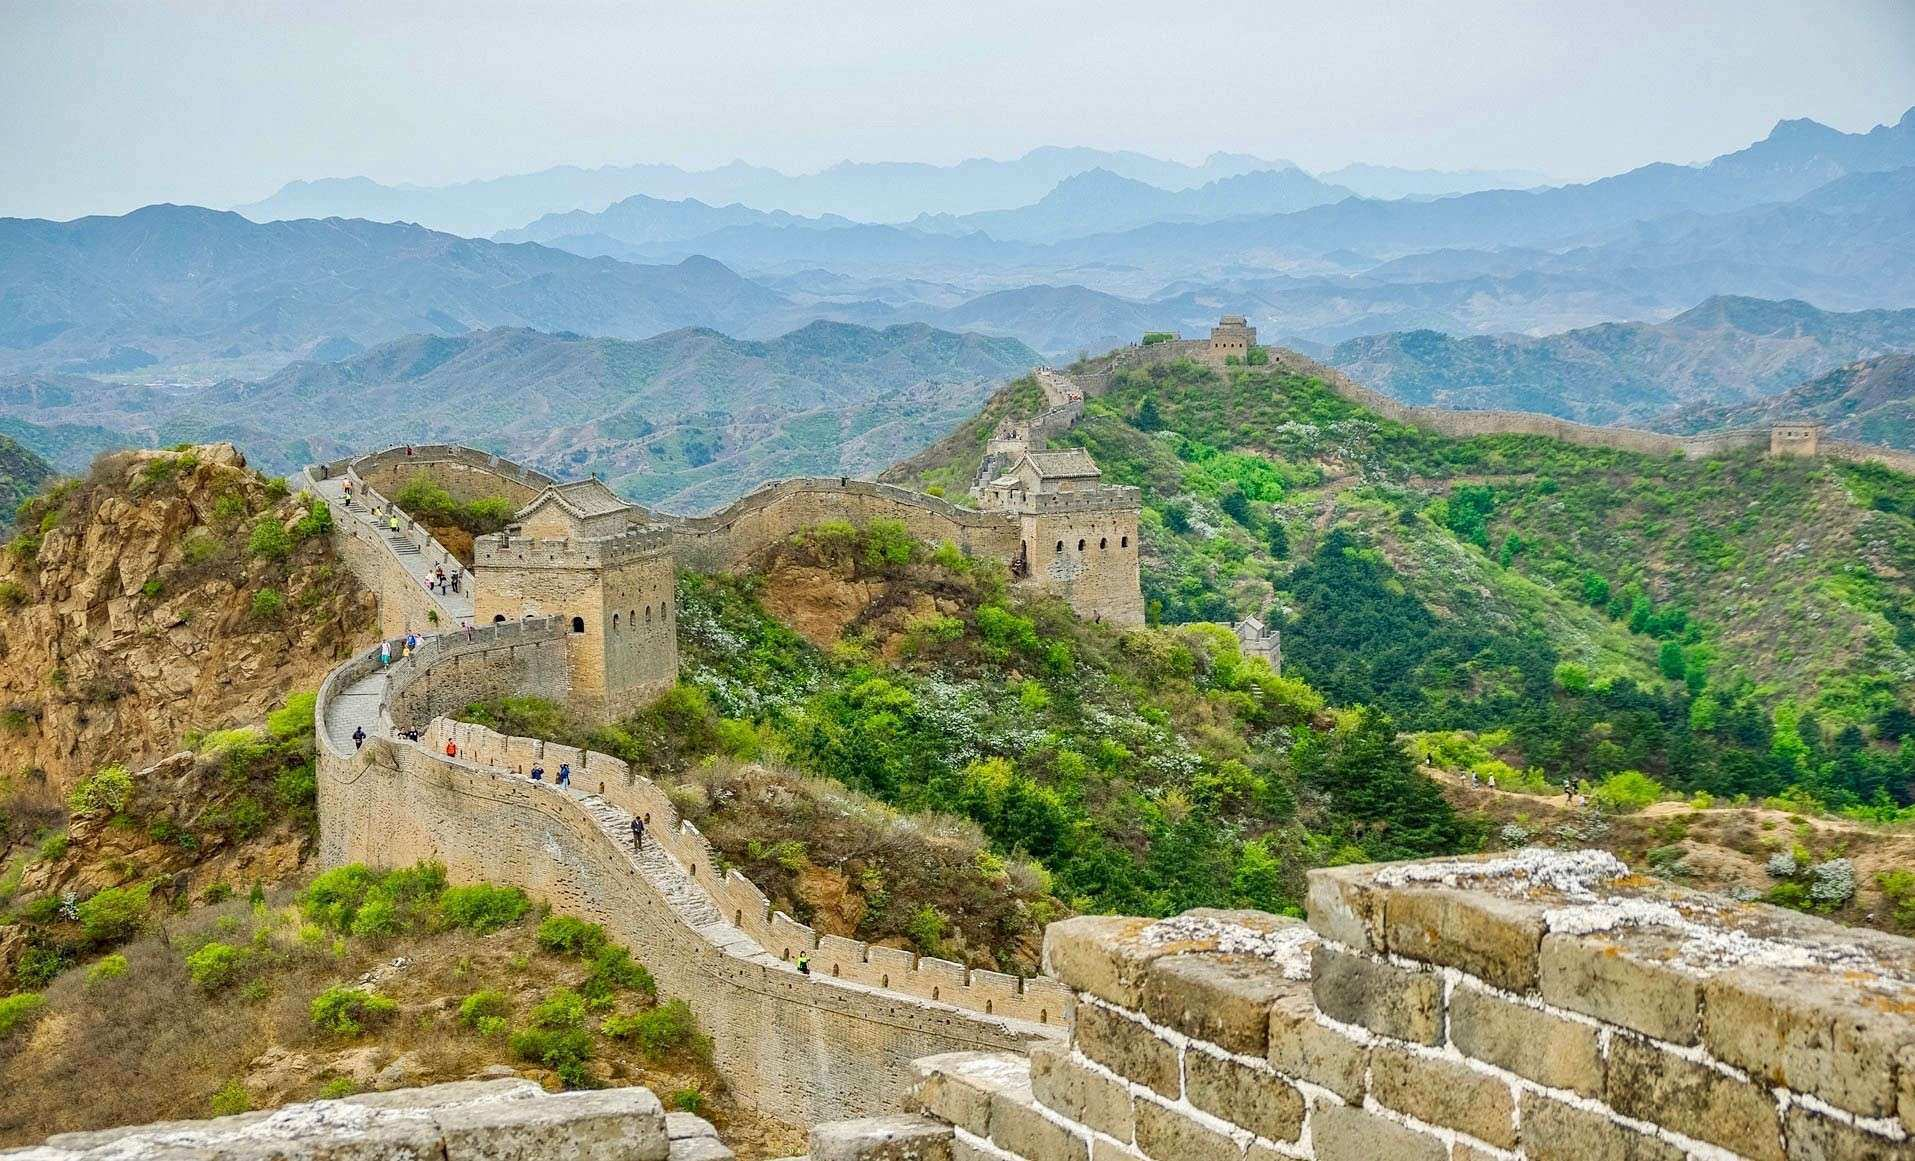 Running the Great Wall of China Marathon for AUPA